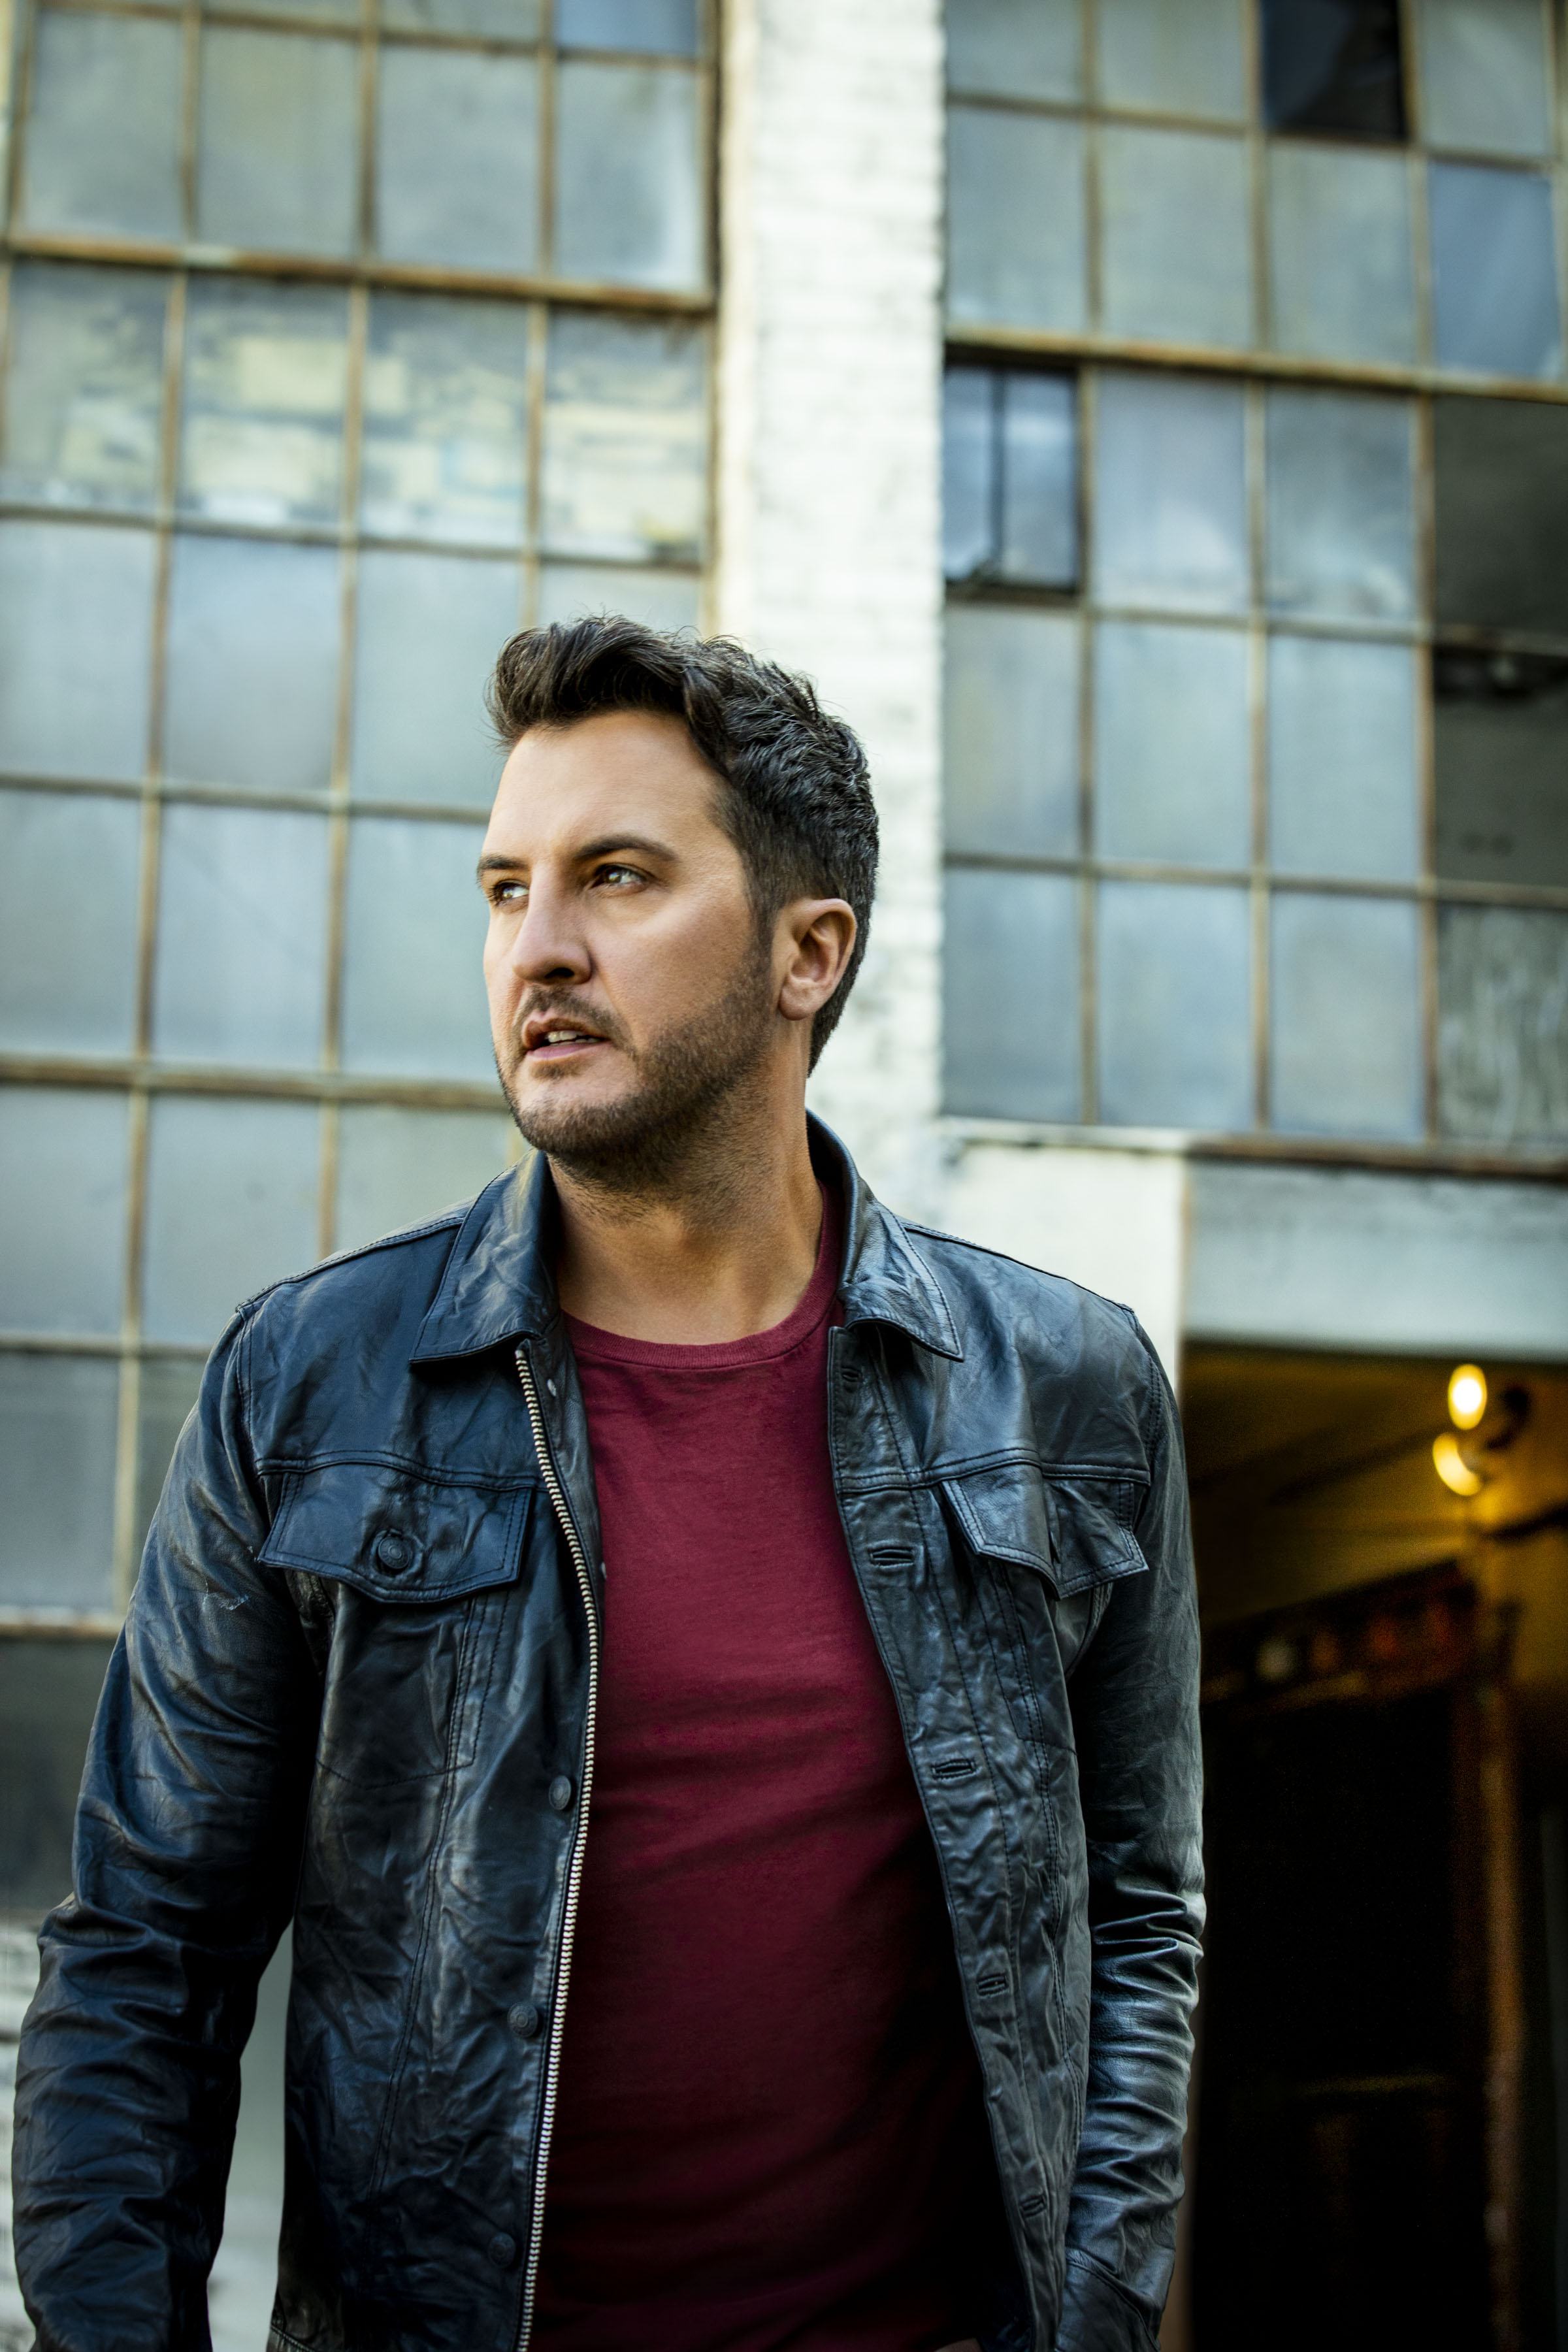 LUKE BRYAN REVEALS ALBUM COVER AND TRACK LIST FOR HIS UPCOMING ALBUM, BORN HERE LIVE HERE DIE HERE.